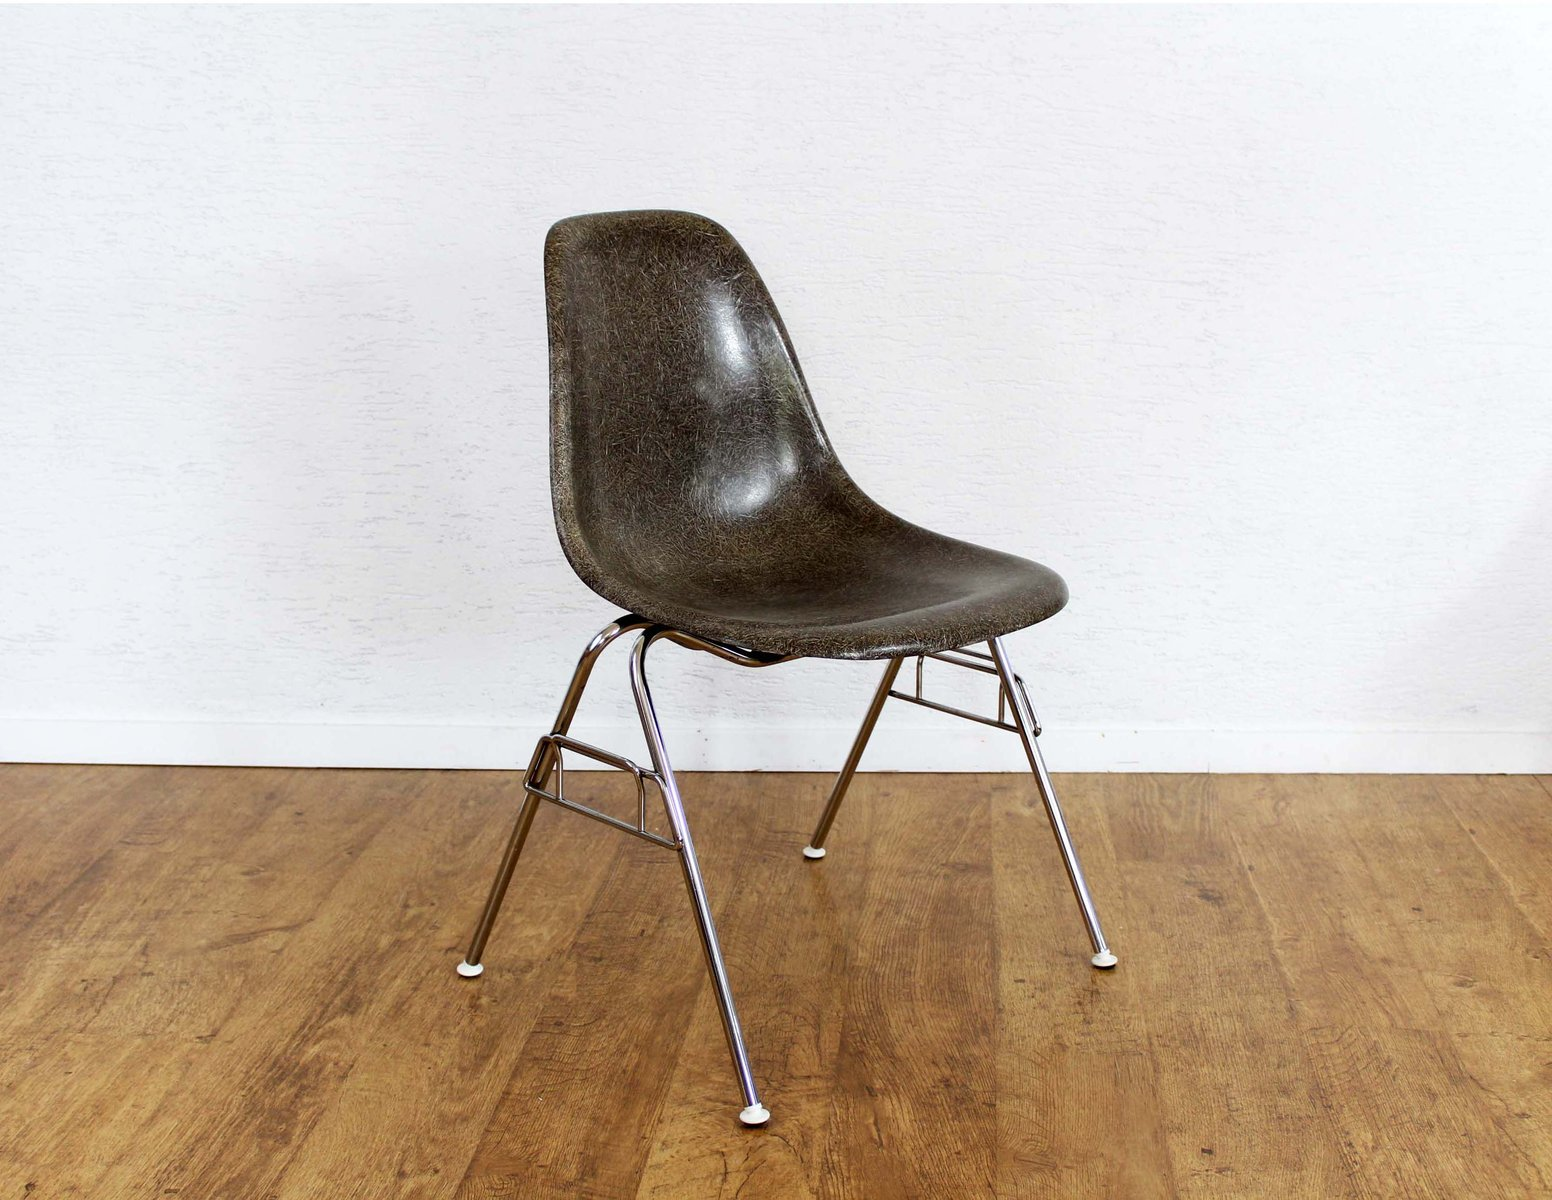 Mid century model dss chair by charles ray eames for for Icon mobel eames